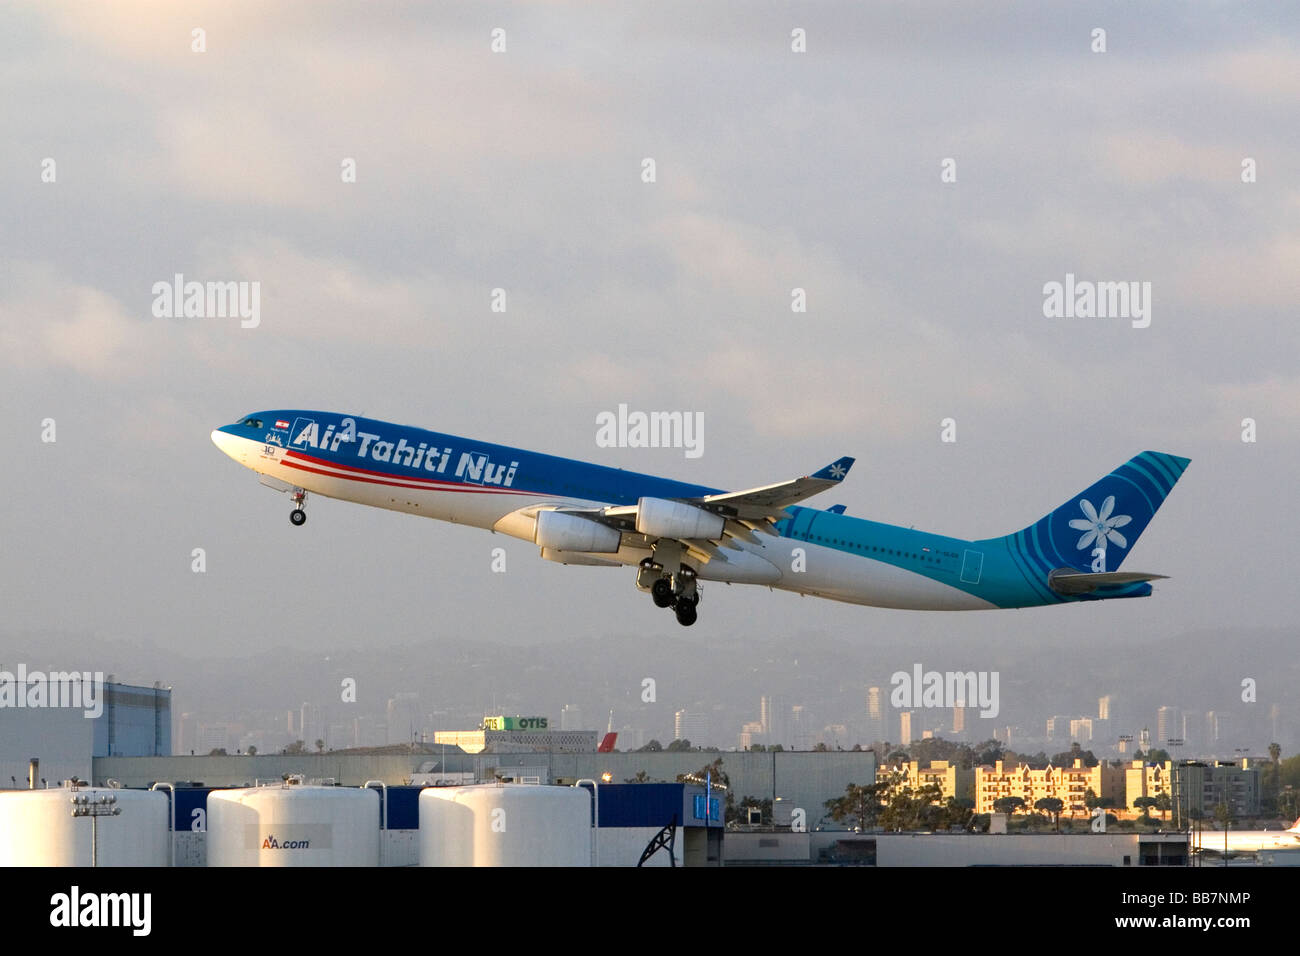 Air Tahiti Nui Airbus 340 at take off from LAX in Los Angeles California USA - Stock Image